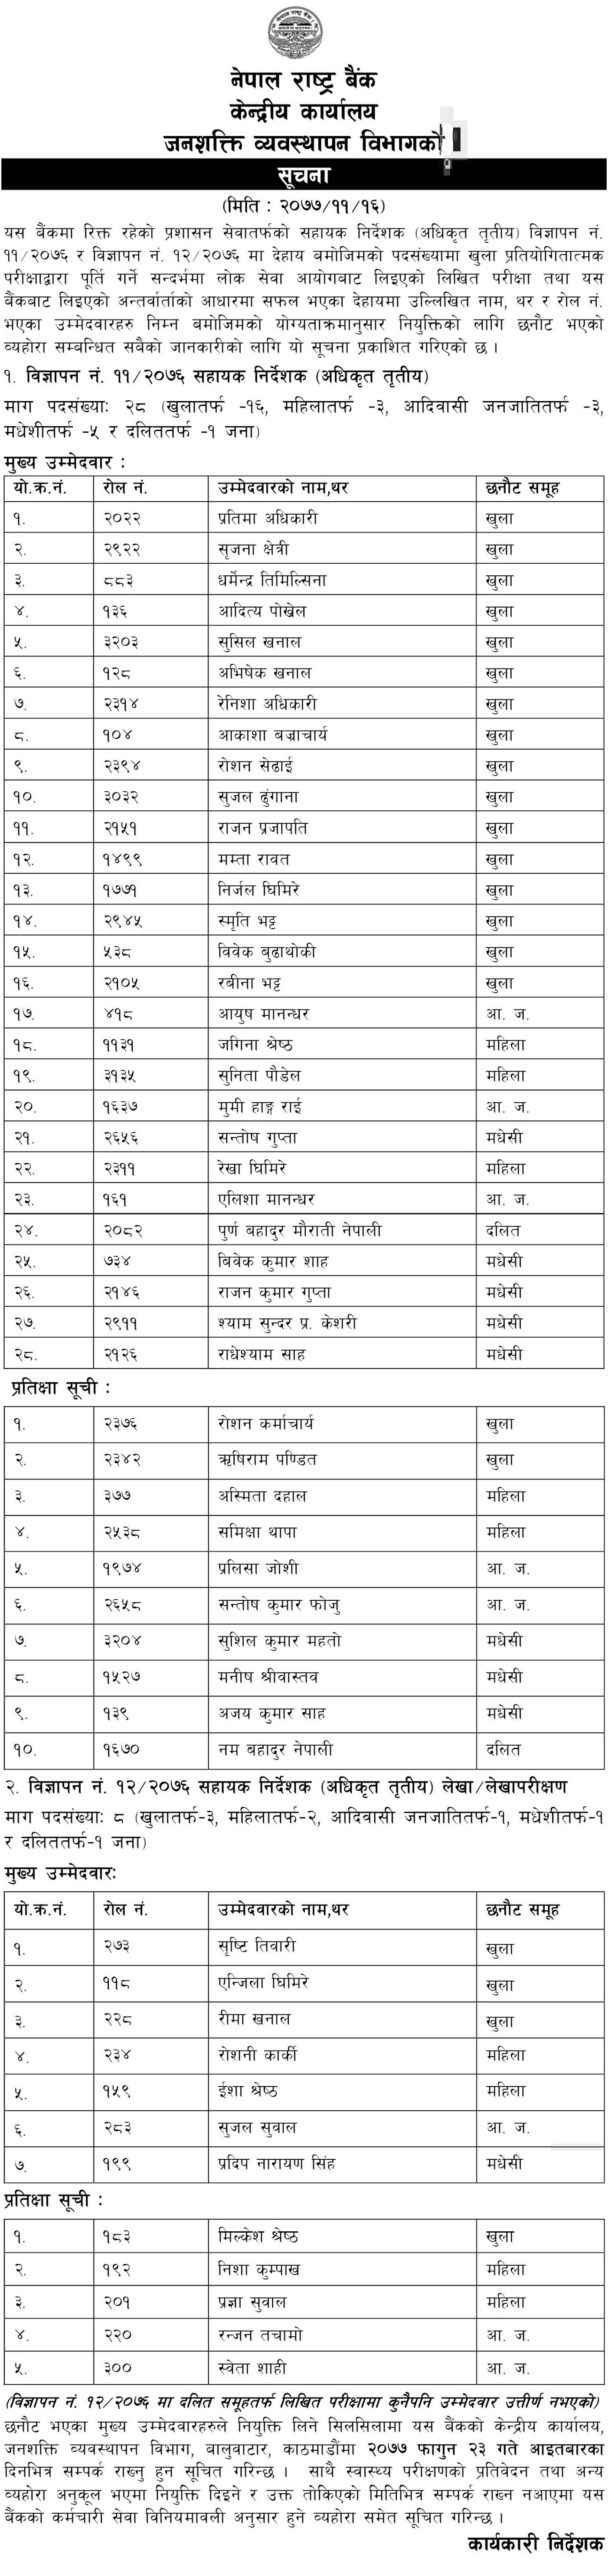 nepal rastra bank assistand director final result